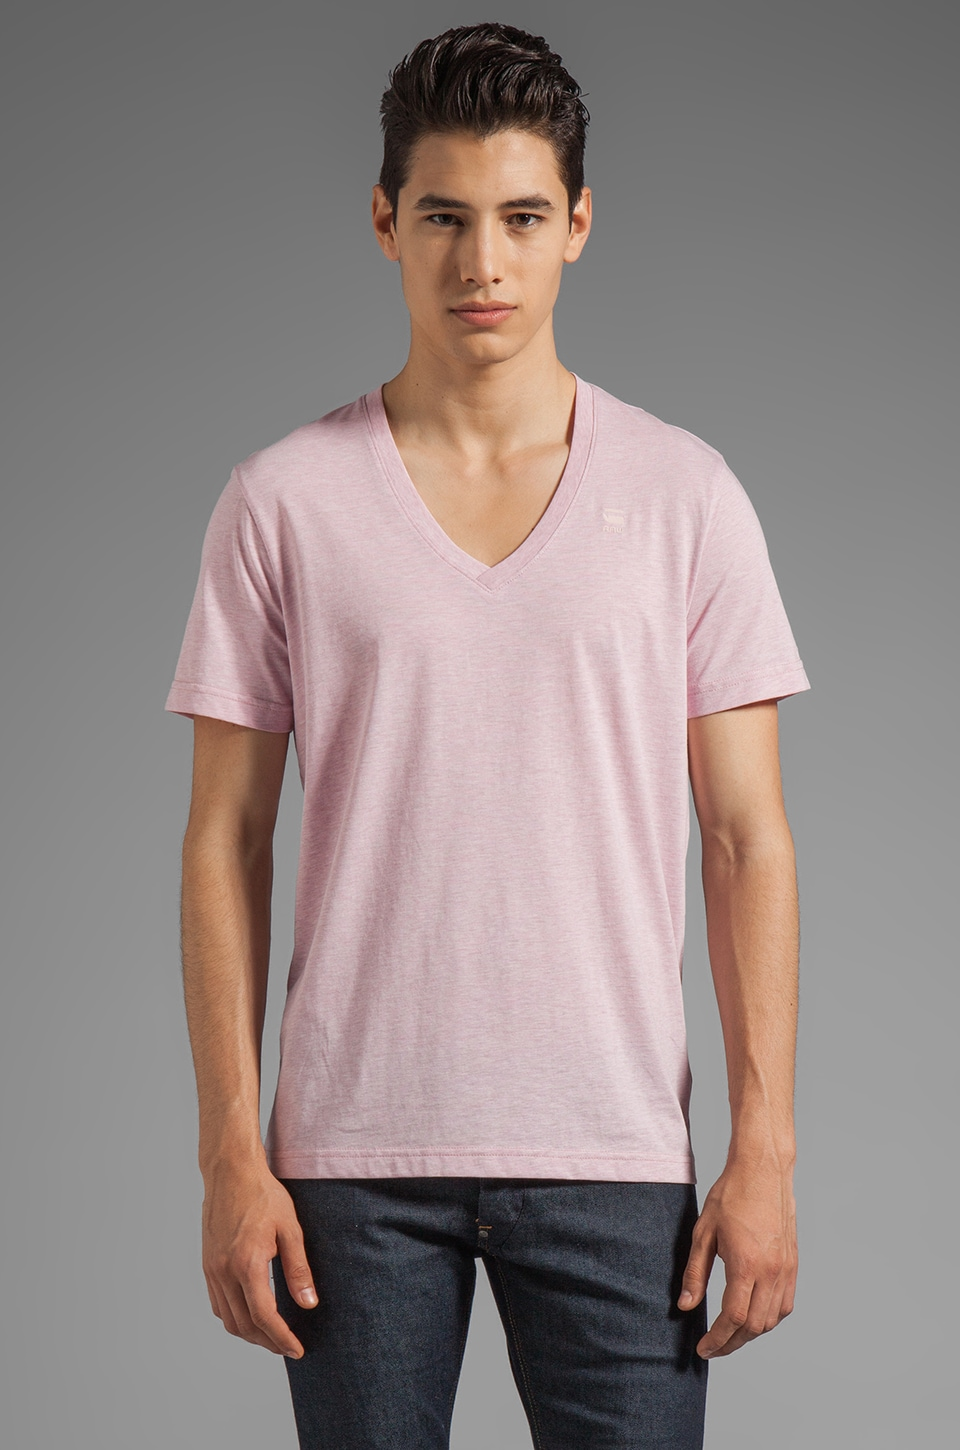 G-Star Correct Base Heather V Neck Tee in Dark Smoothy Heather